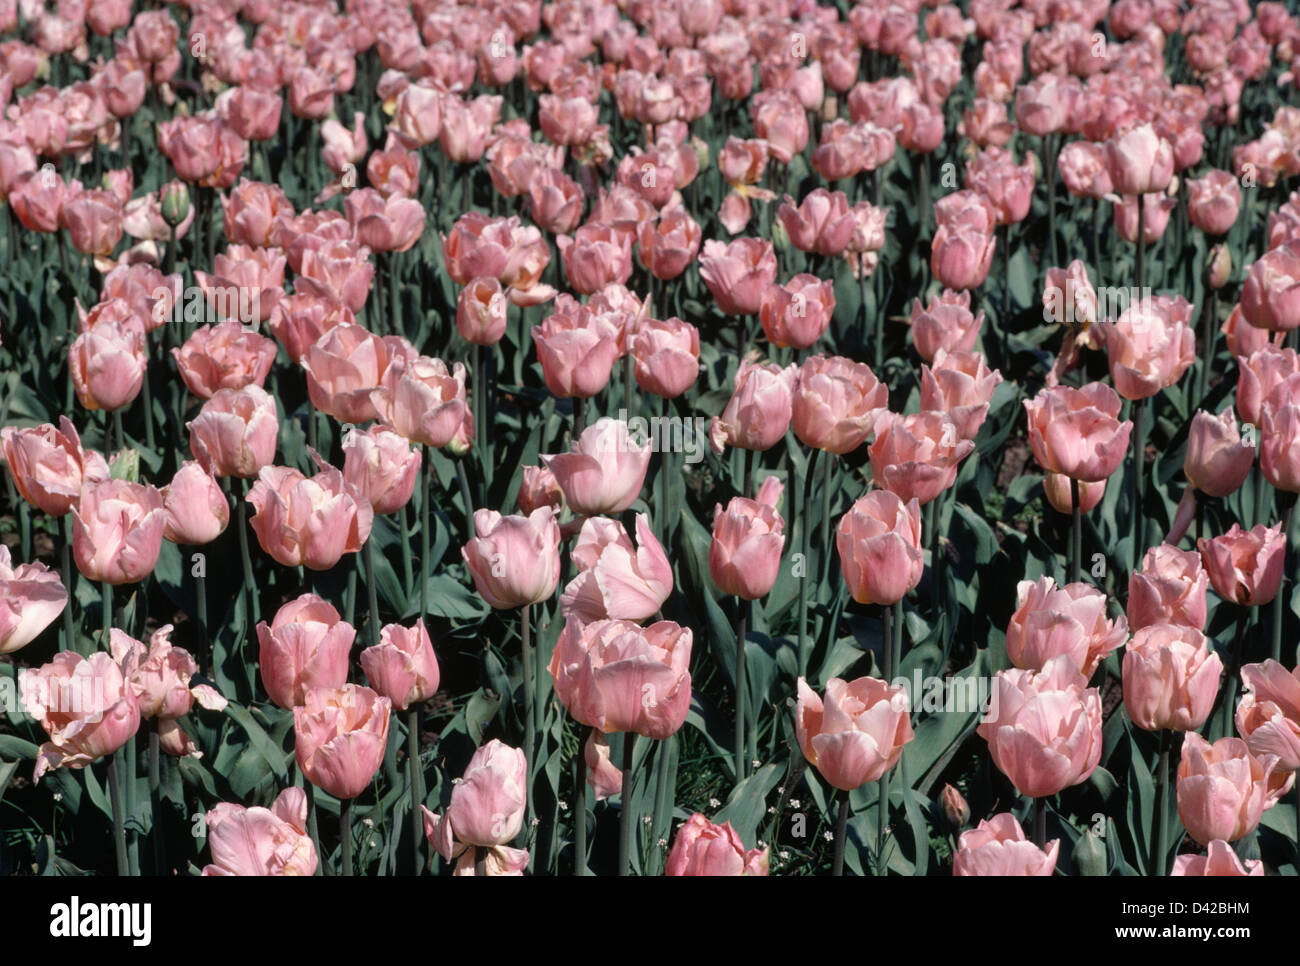 Close up of bed of Tulipa 'Apricot Beauty' - Stock Image